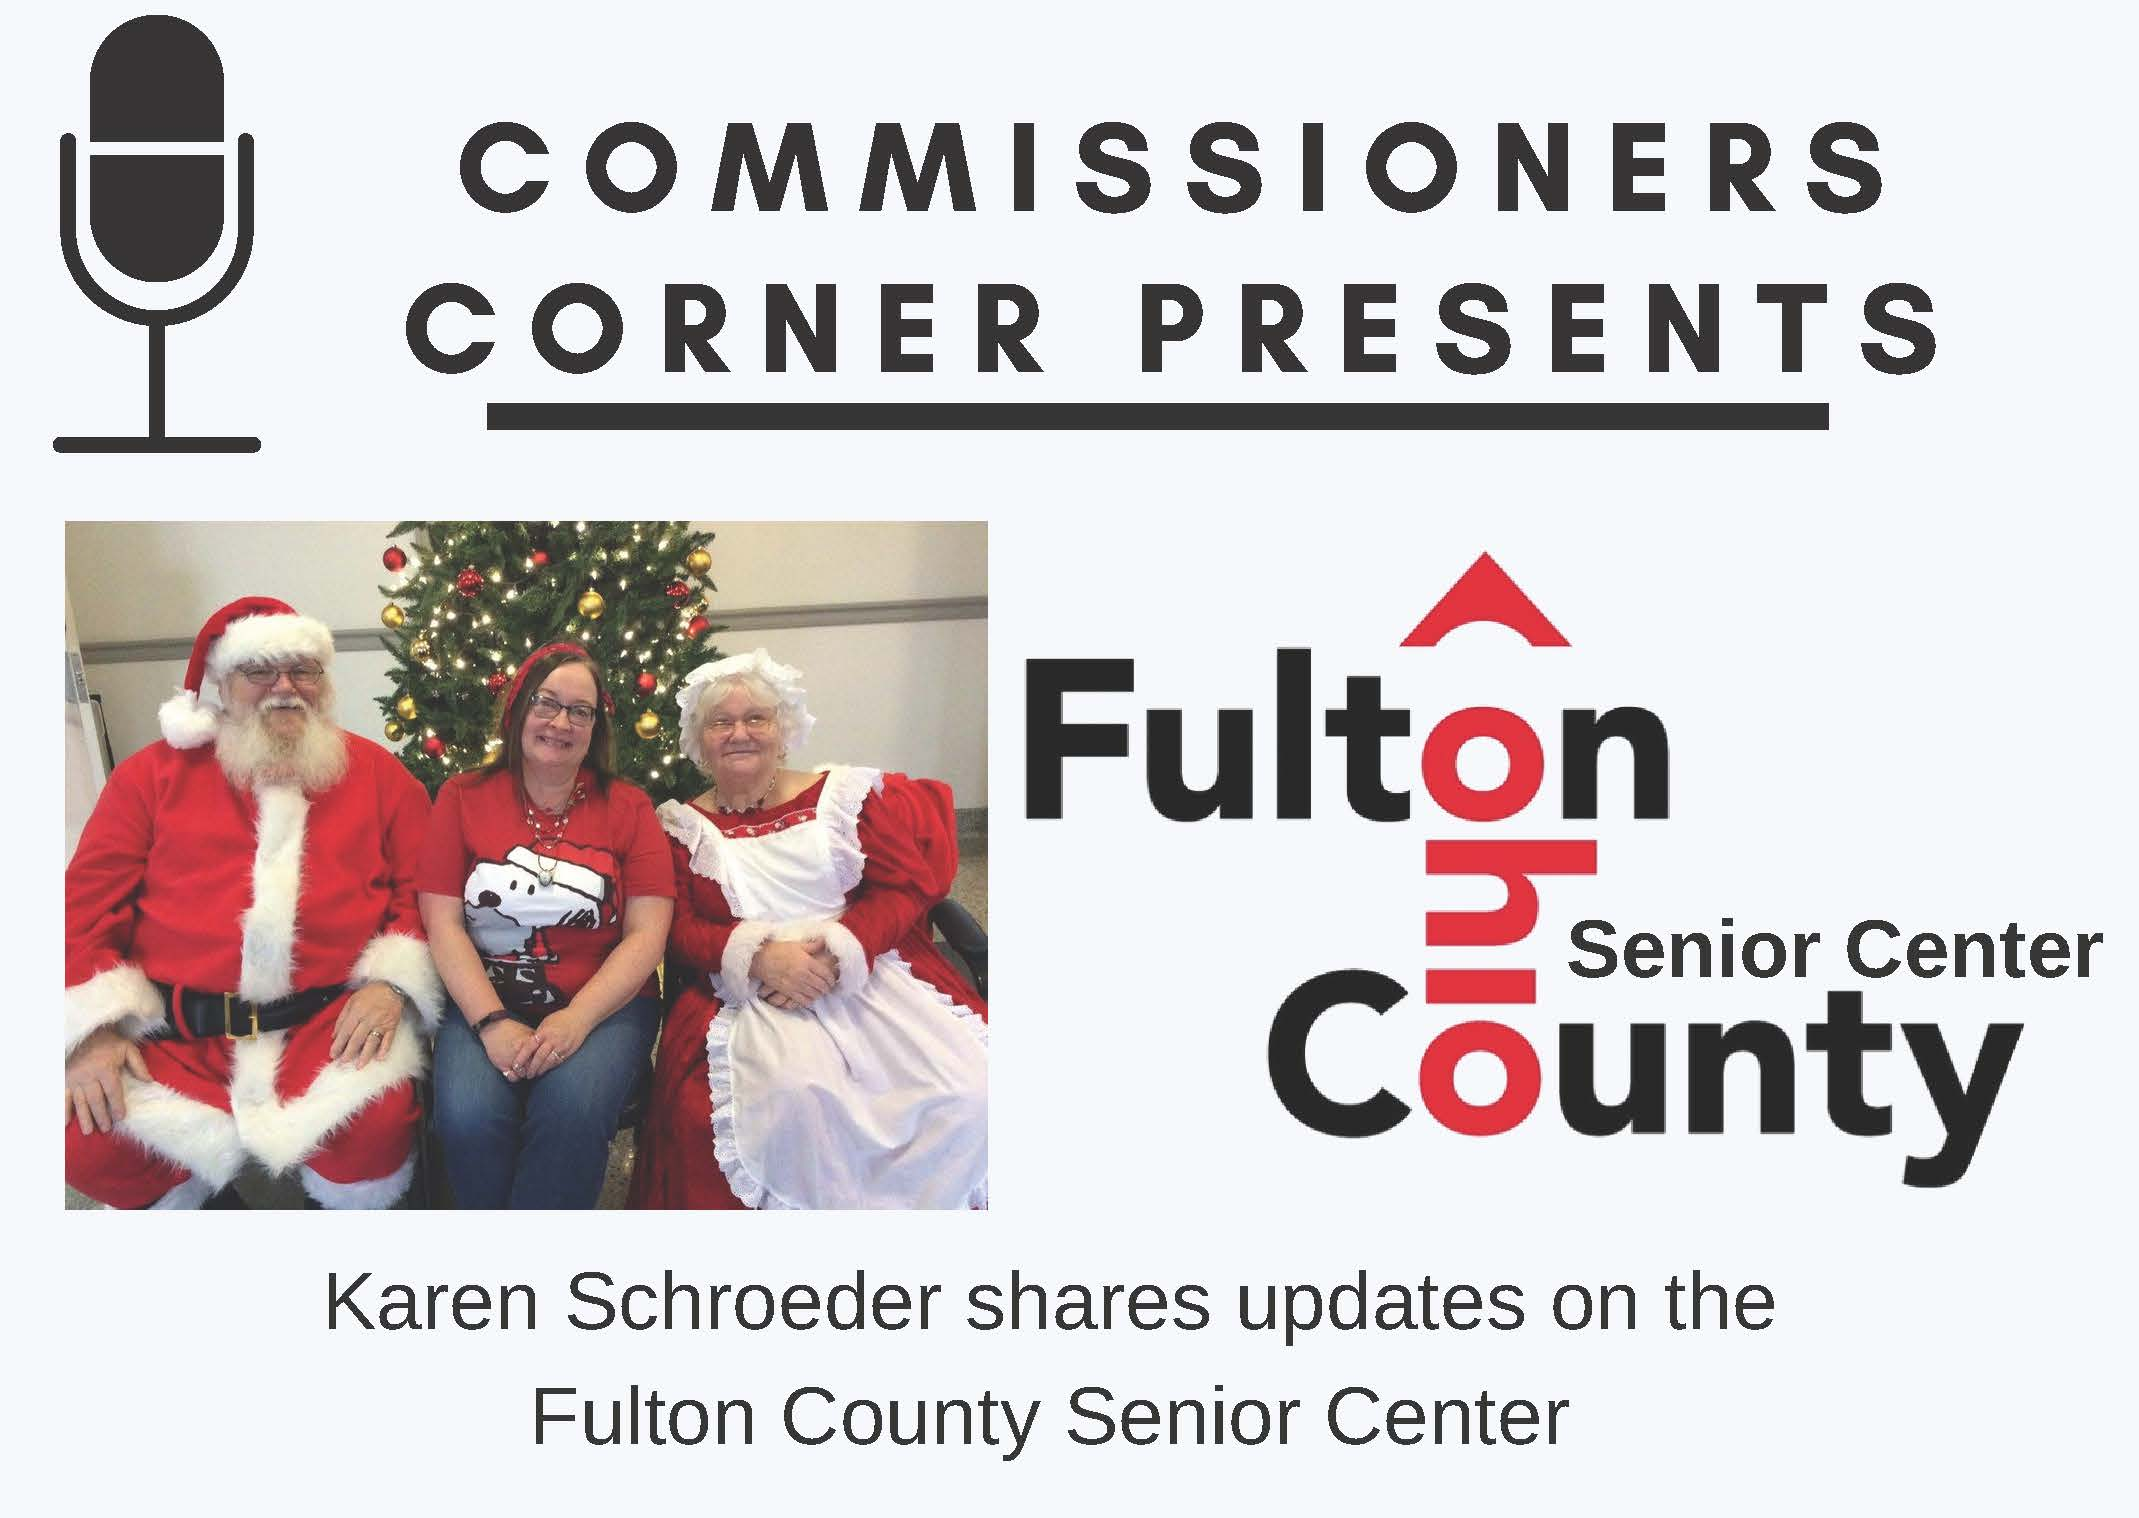 Commissioners Corner interviews Karen Schroeder with the Fulton County Senior Center